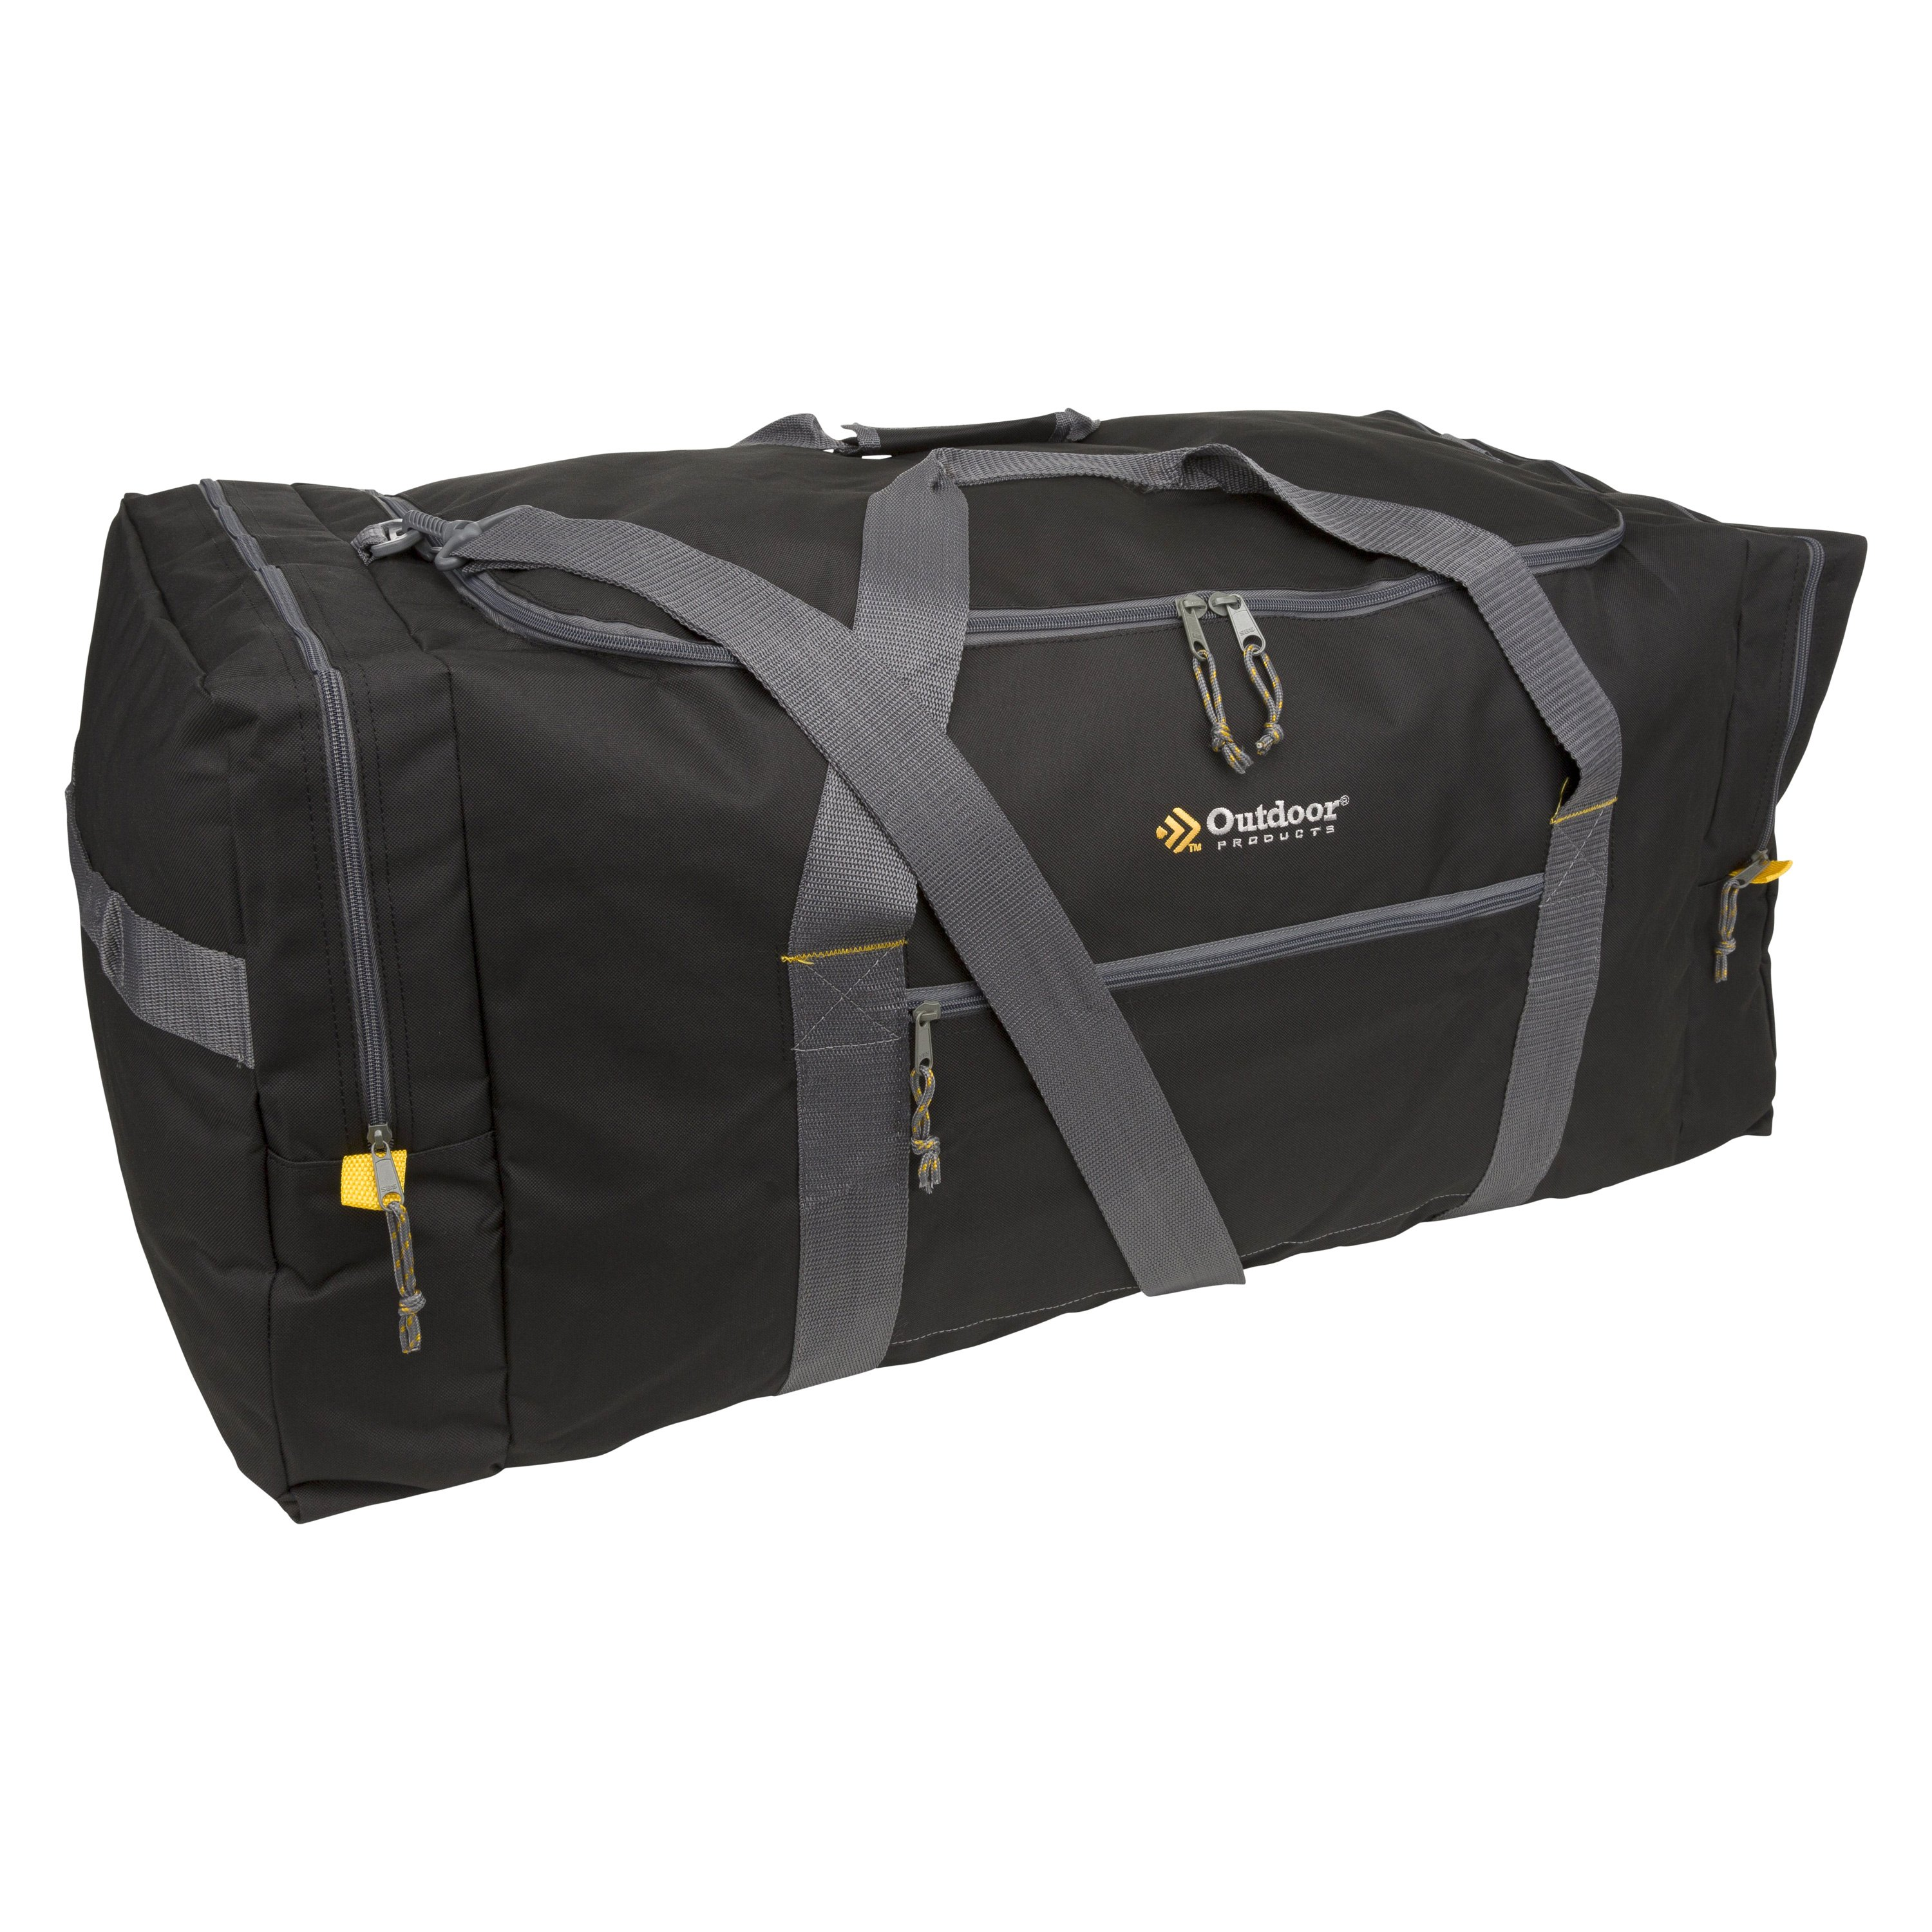 Outdoor Products Mountain X Large Duffle Bag